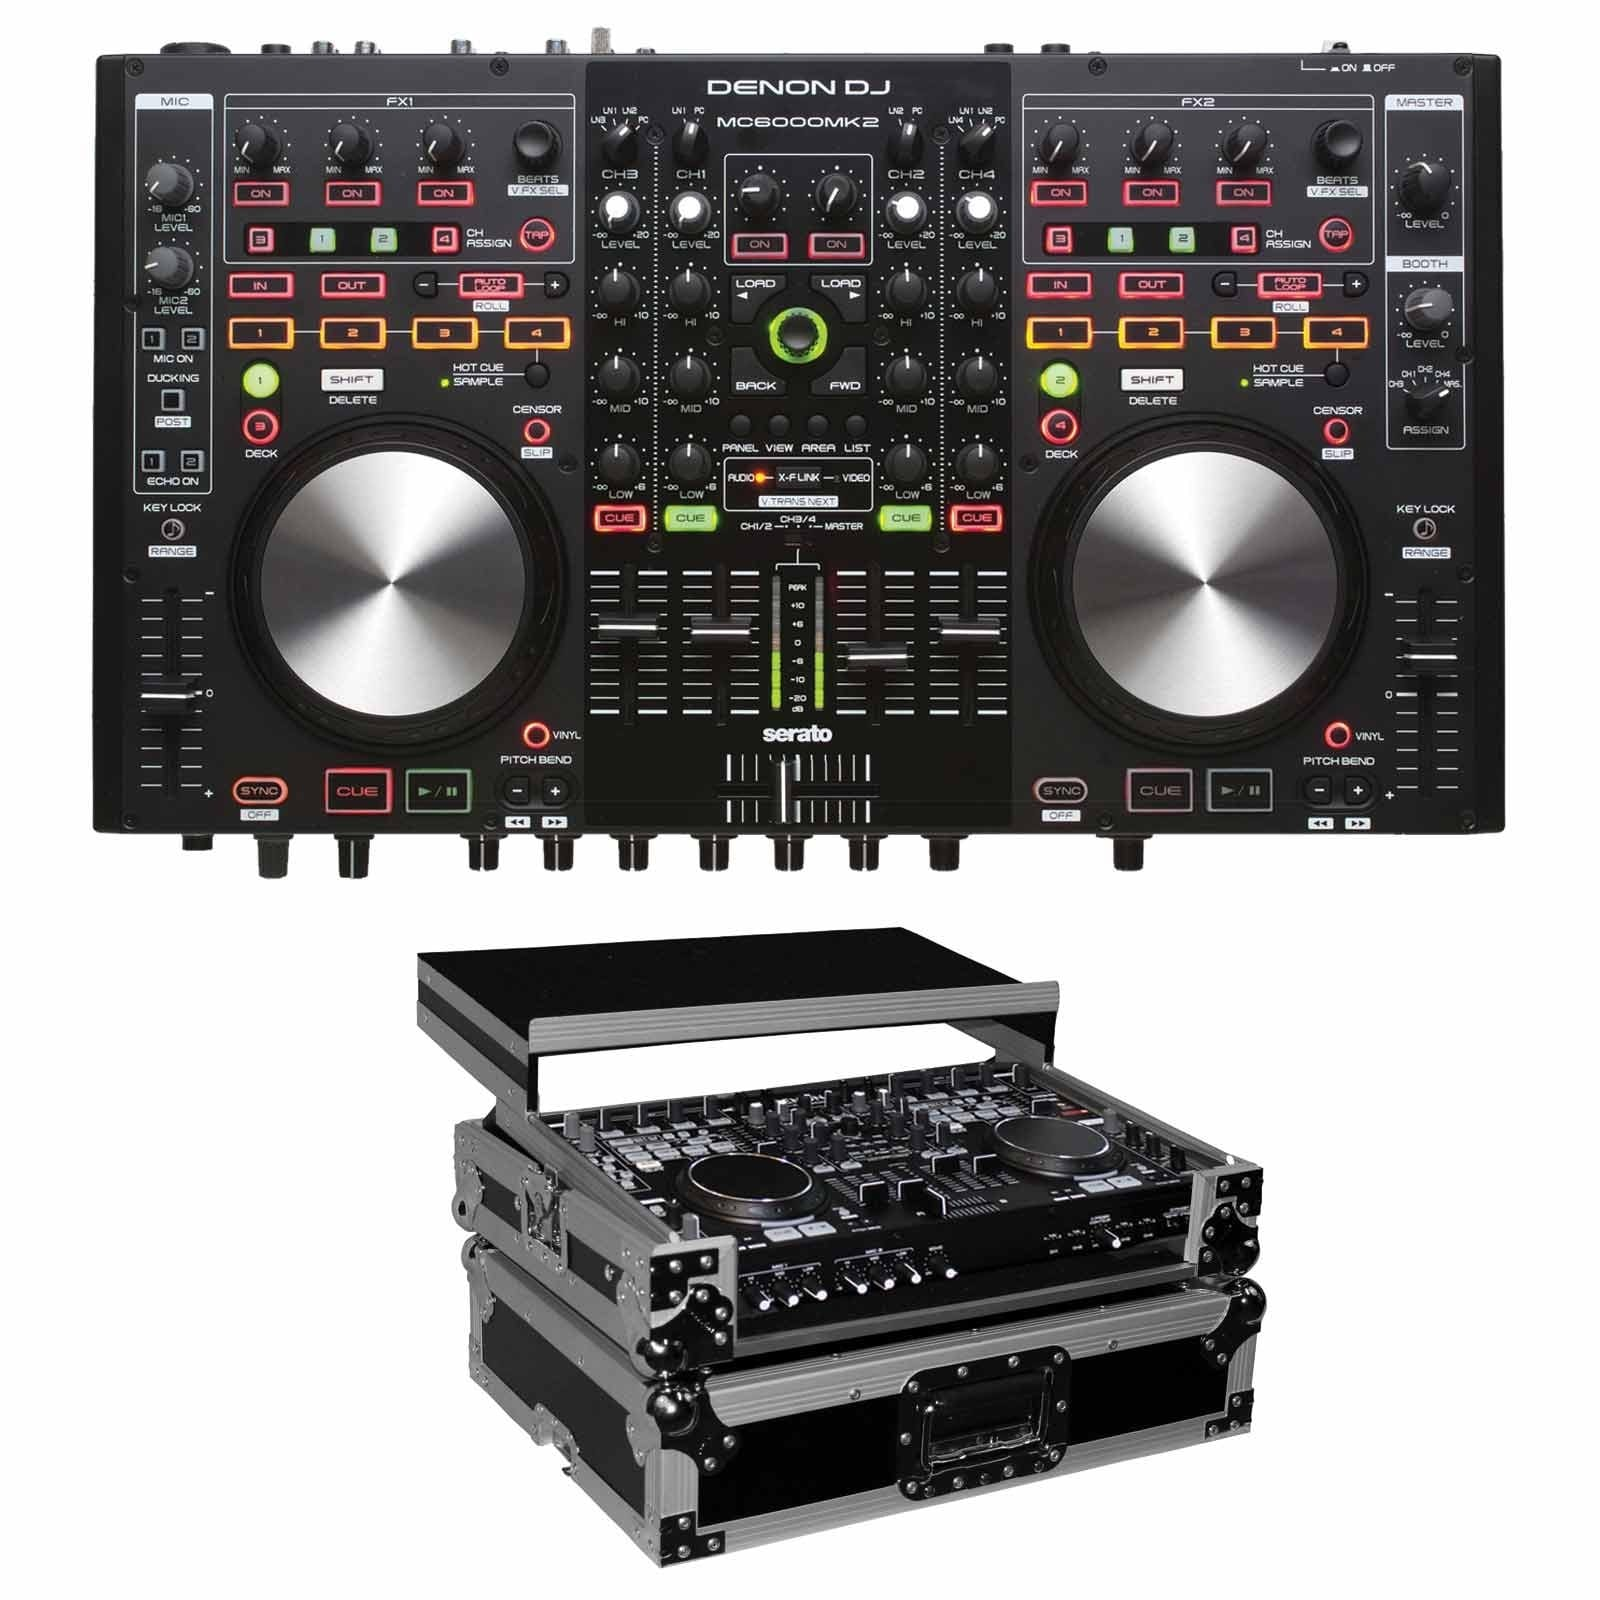 denon dj mc6000mk2 digital mixer controller package with flight case prosoundgear. Black Bedroom Furniture Sets. Home Design Ideas